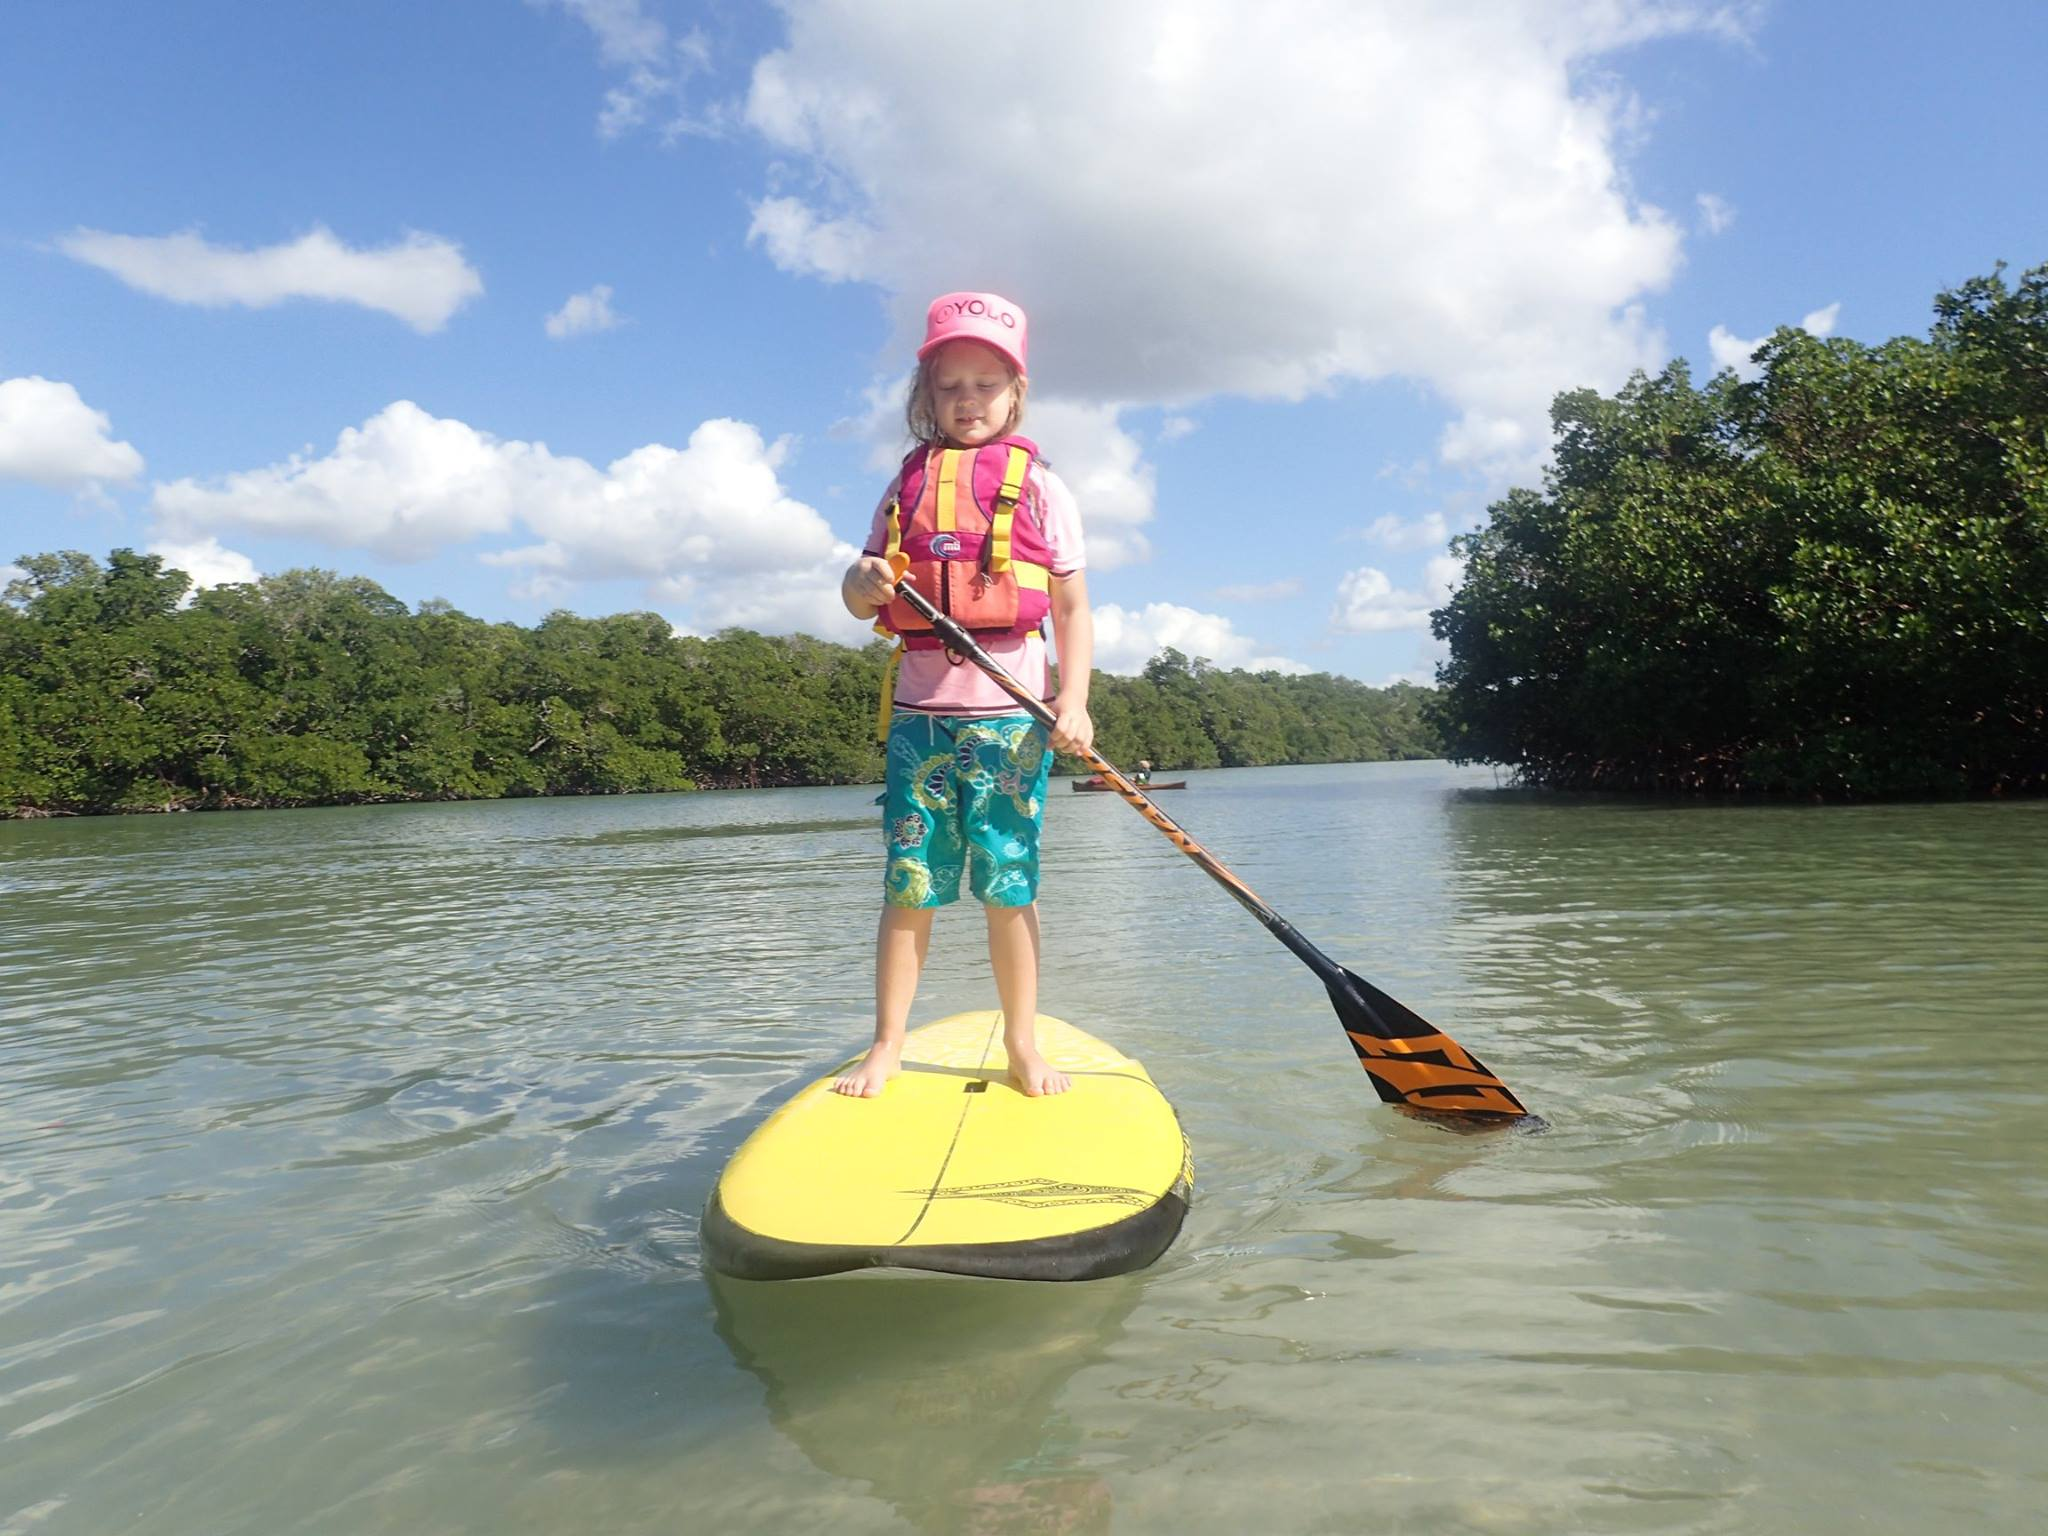 Big hickory island preserve coastal angler the angler magazine another popular launch is farther south on the island directly across from the bonita springs water tower the paddle from this launch to the beach is a nvjuhfo Choice Image